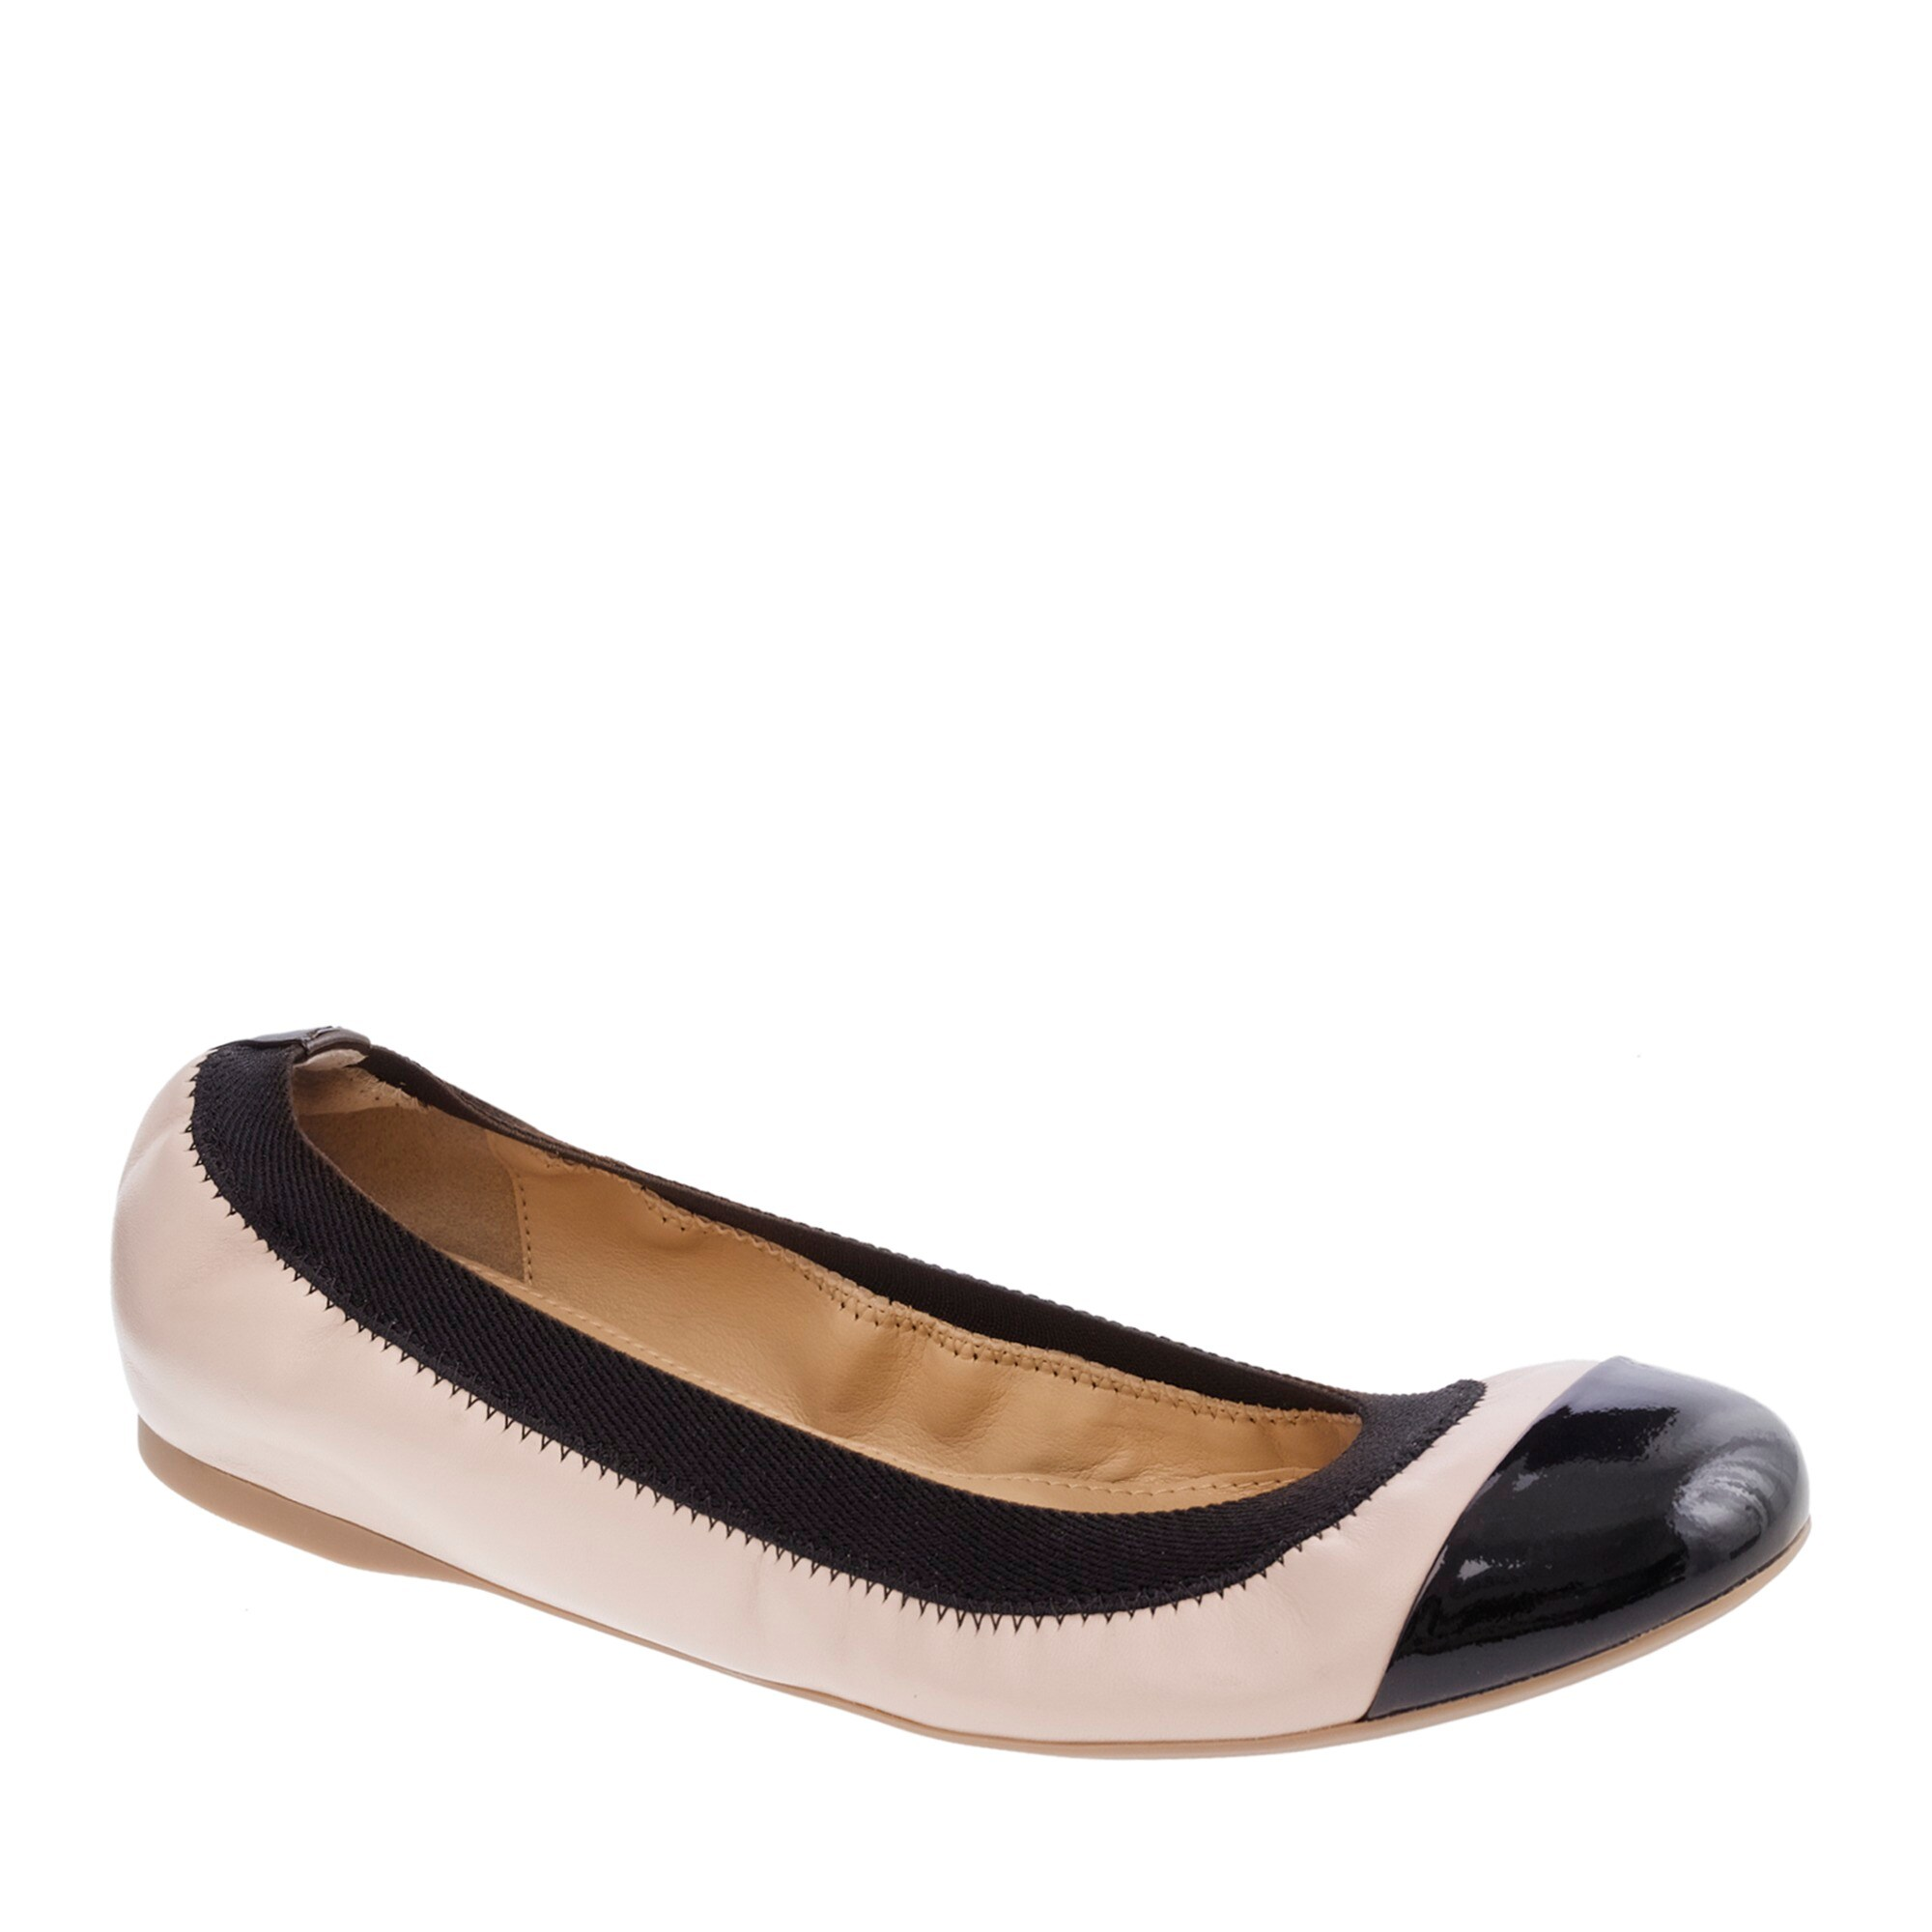 Image 1 for Mila cap toe leather ballet flats